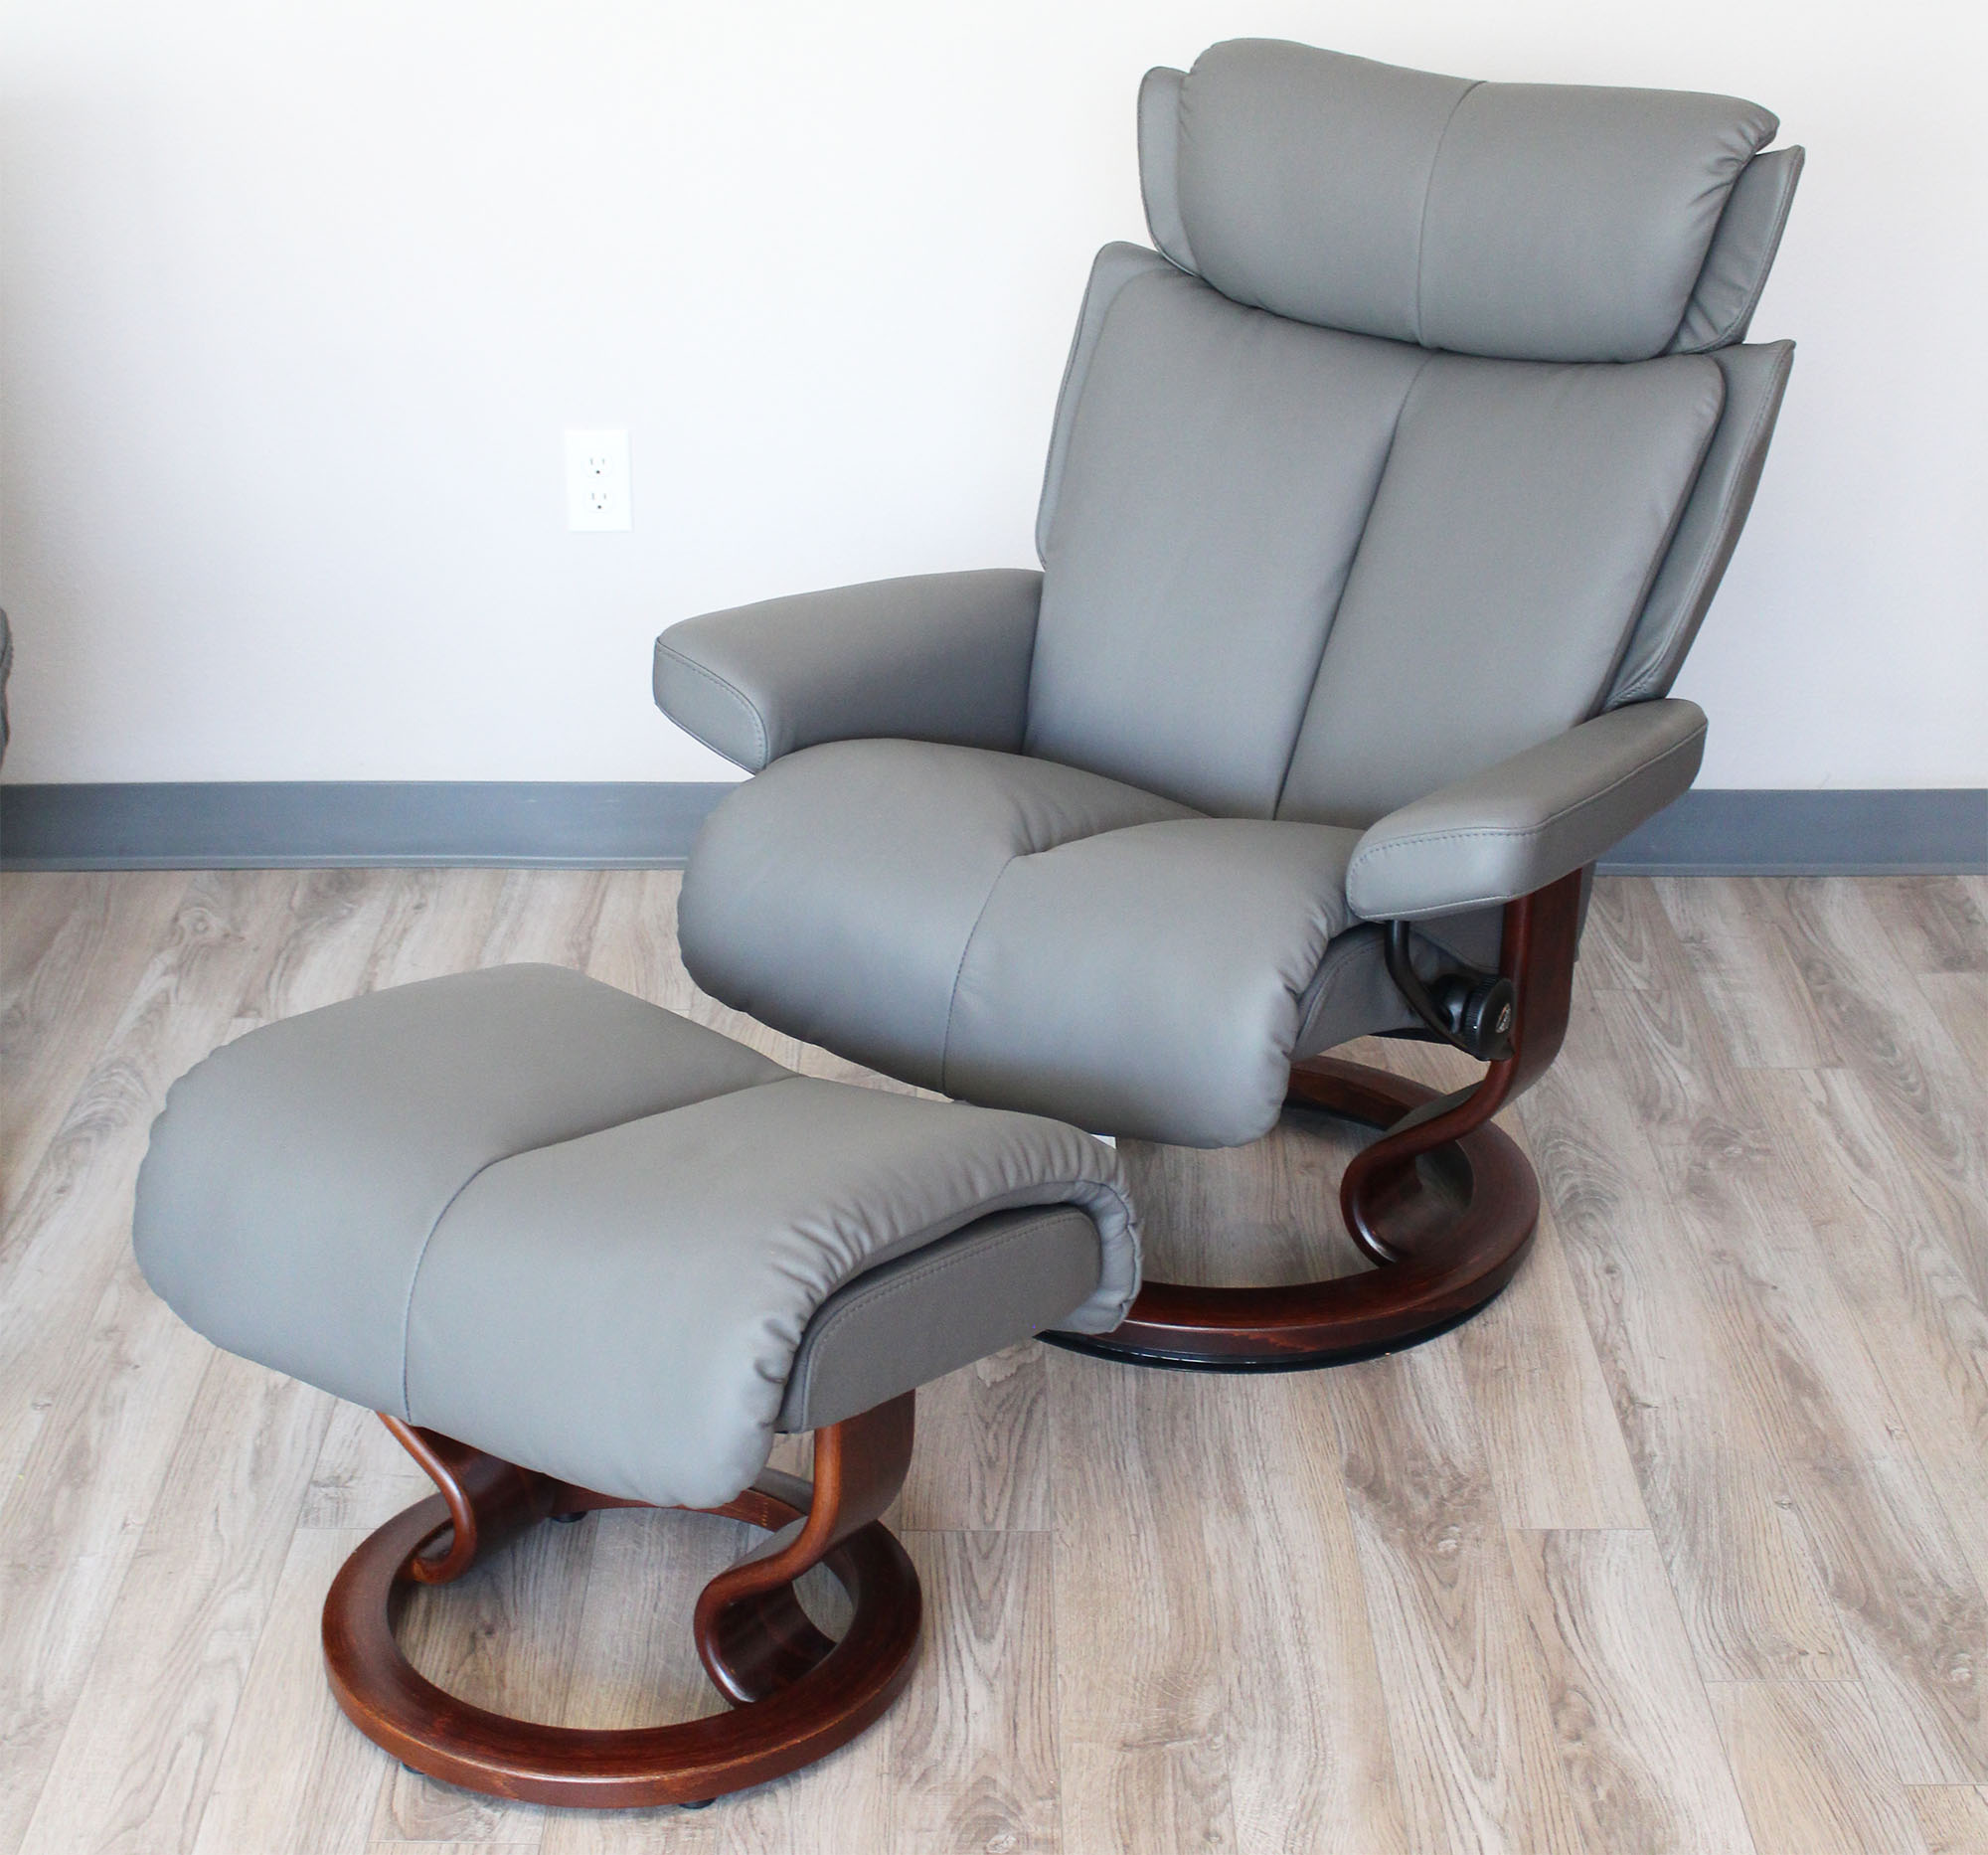 Leather Recliner Chair With Ottoman Stressless Magic Paloma Metal Grey Leather Recliner Chair And Ottoman By Ekornes